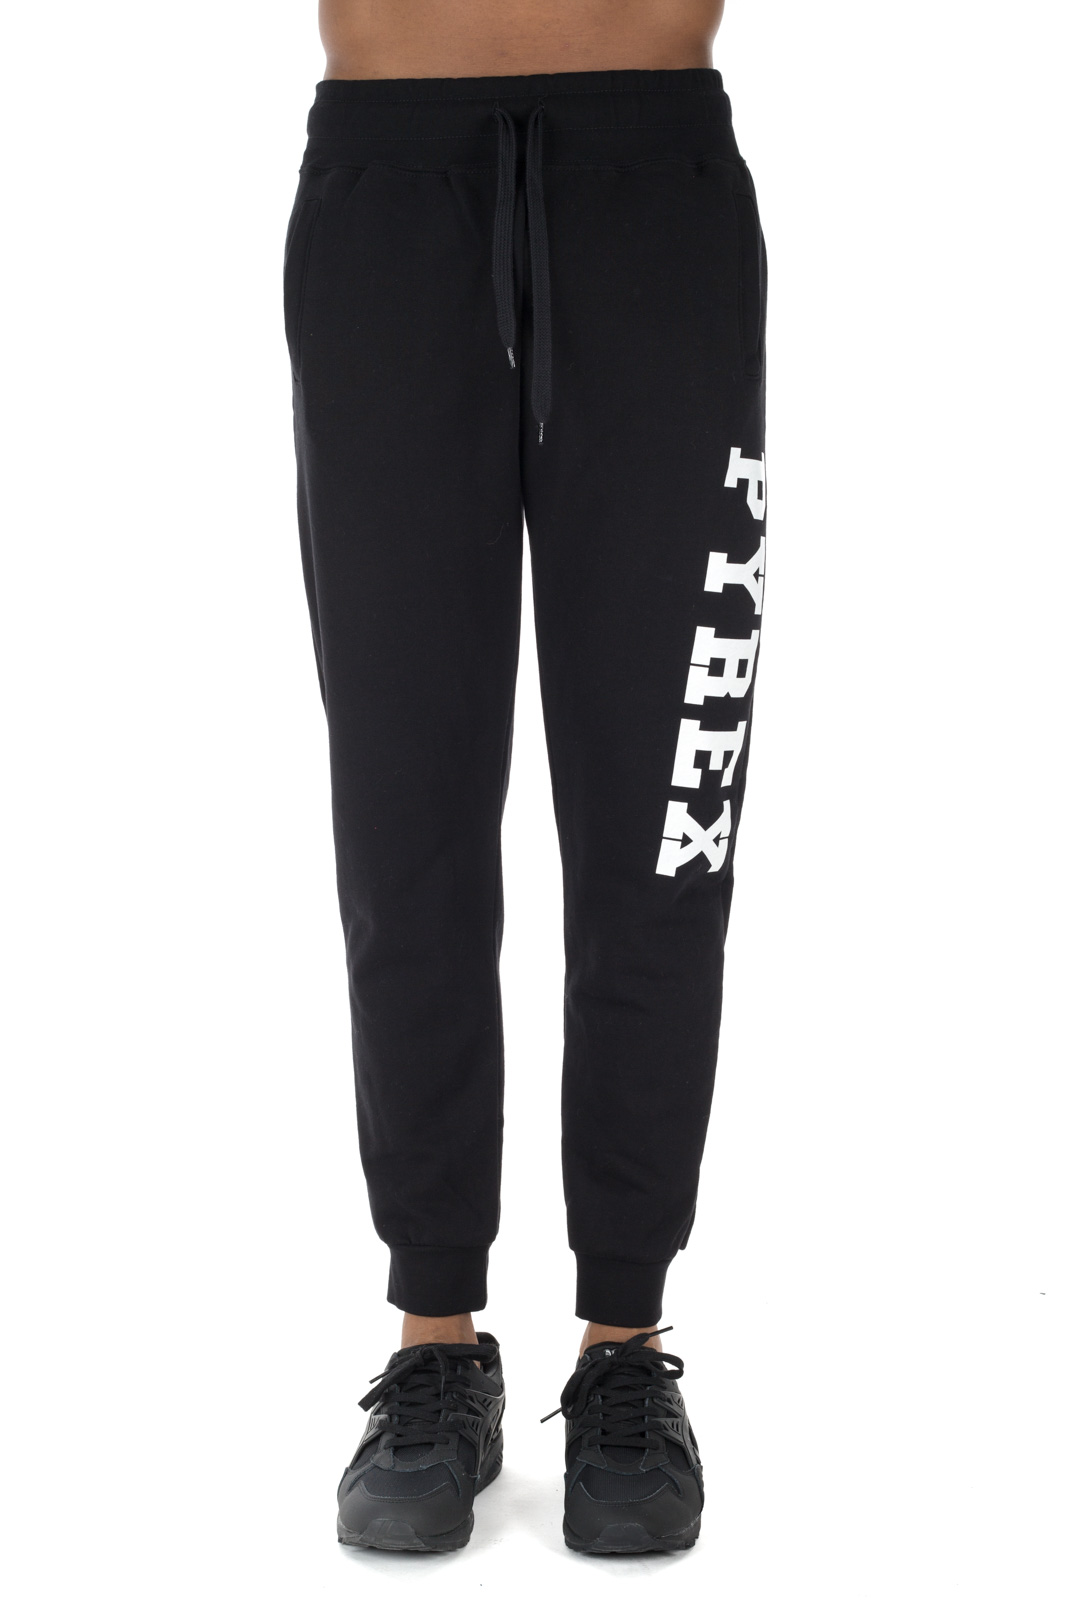 Pyrex - Trousers Unisex Black